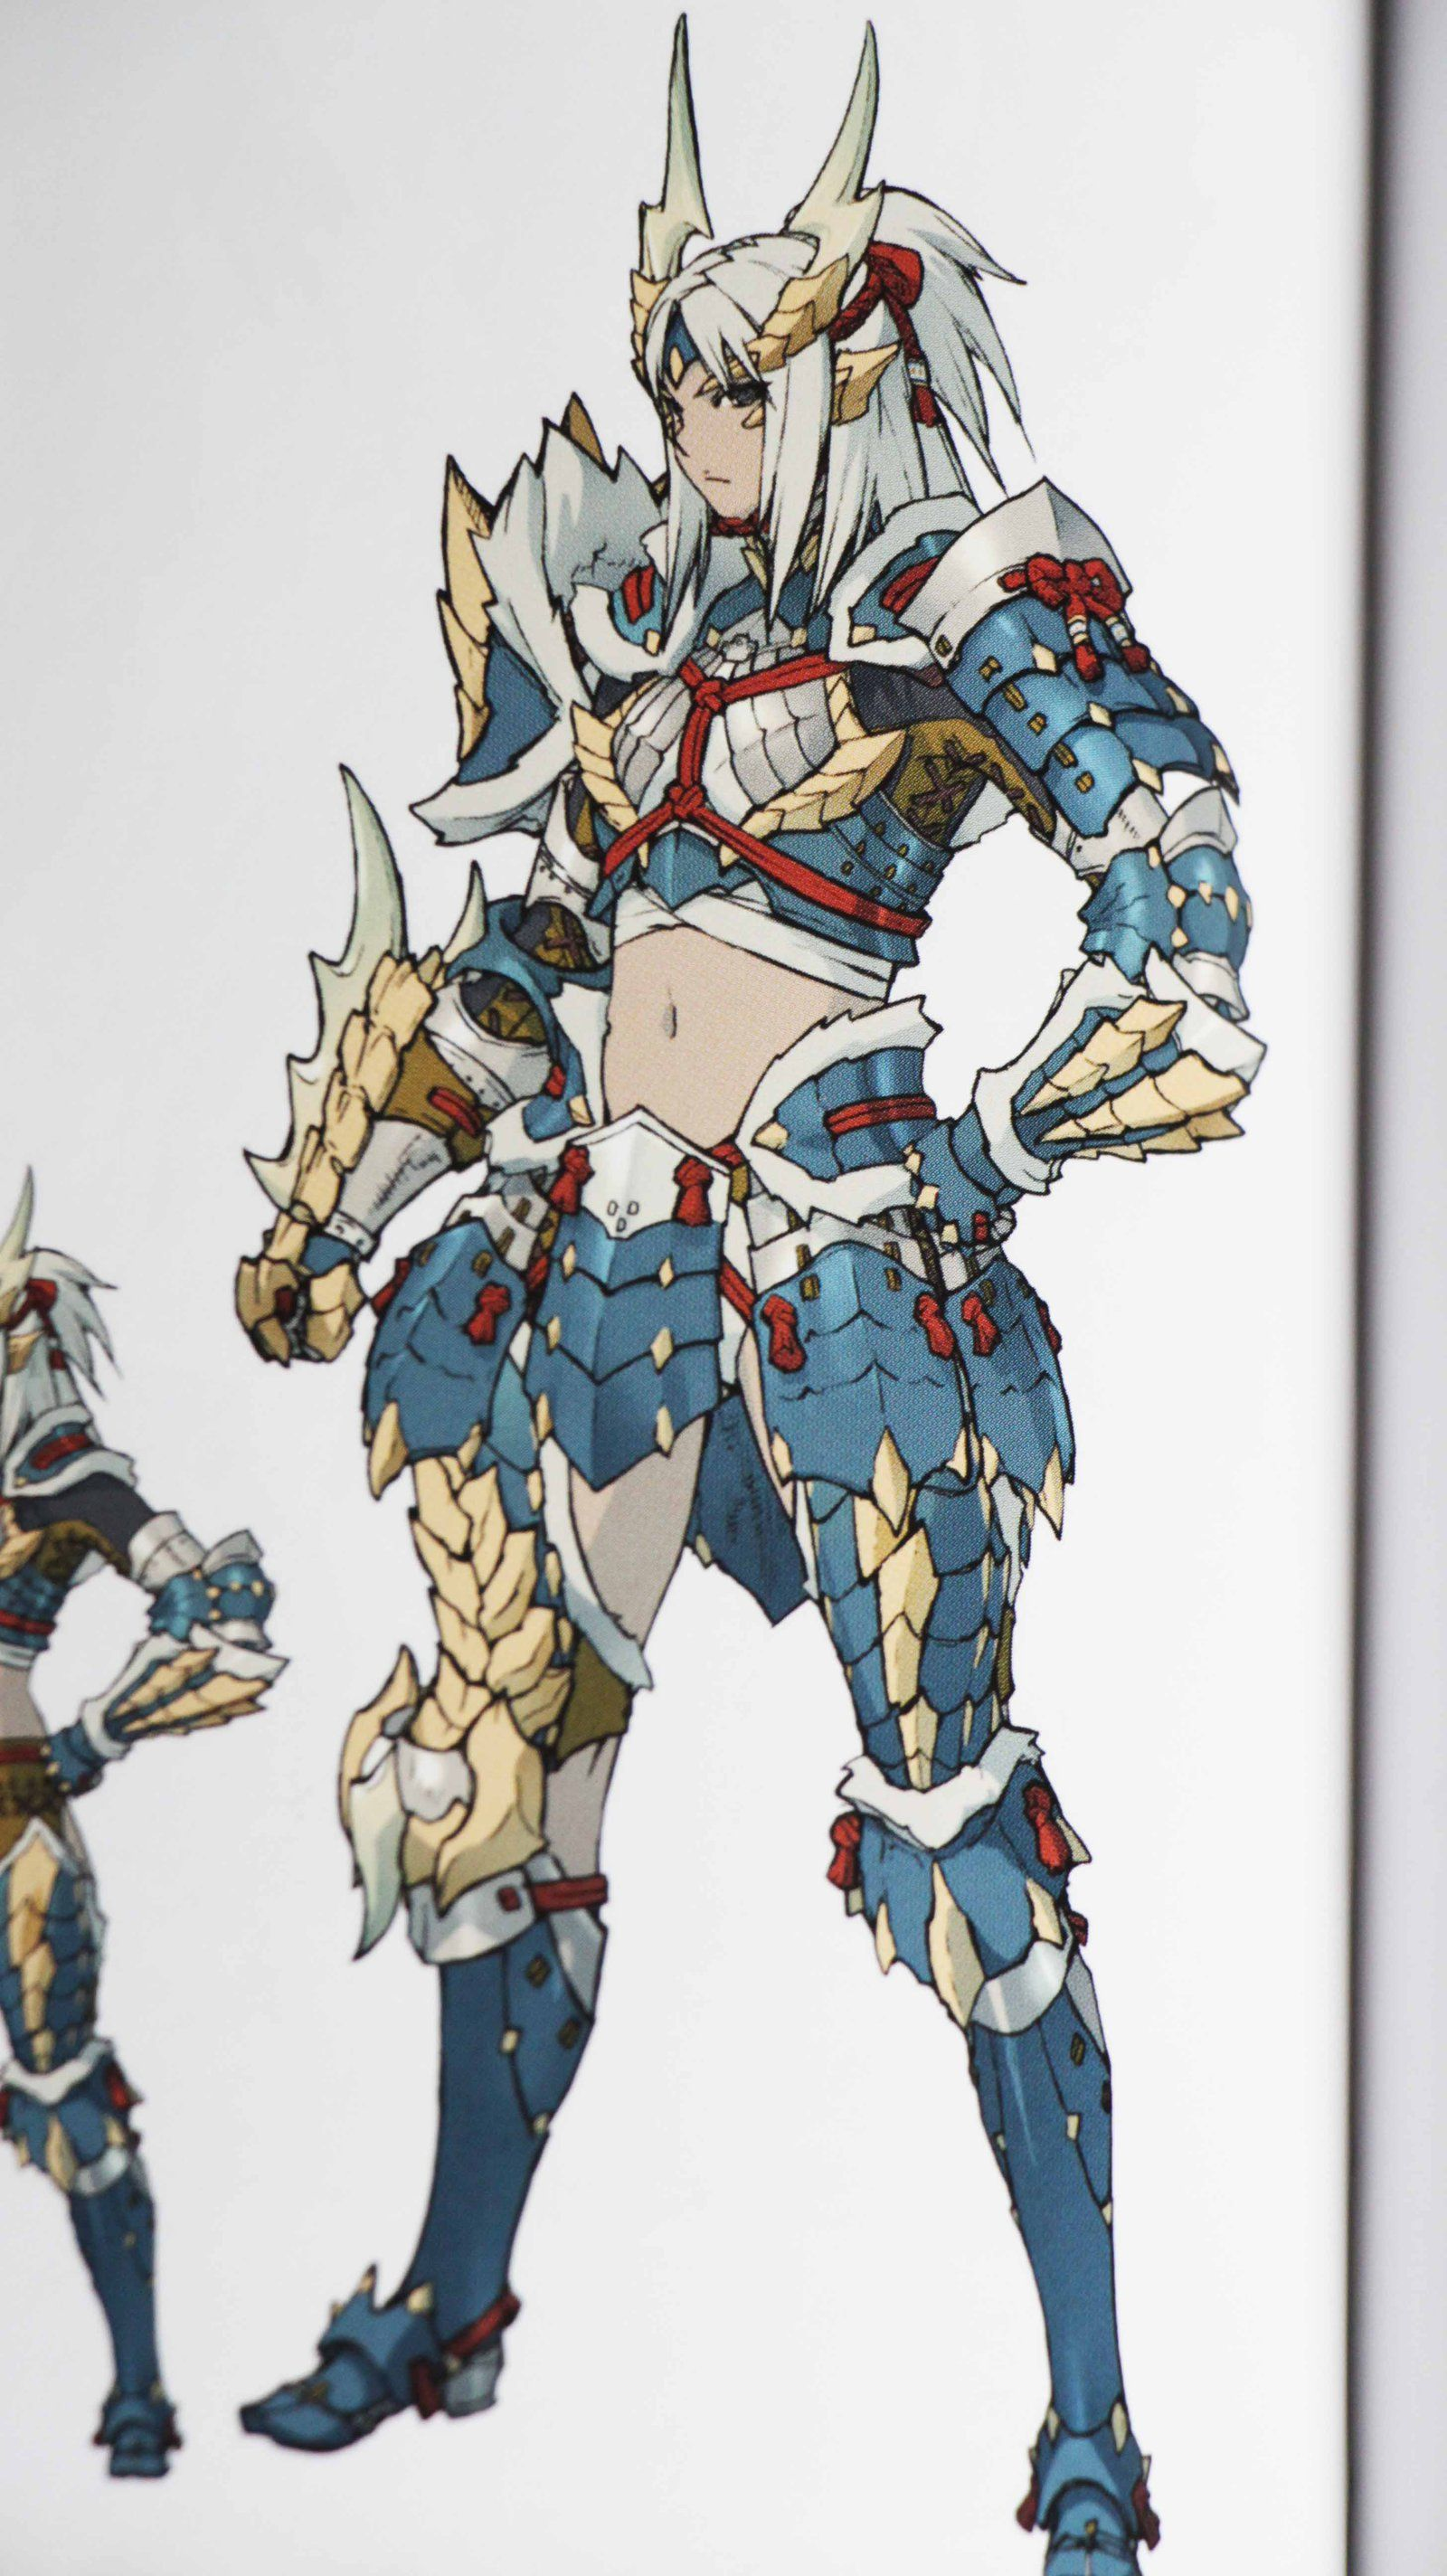 Mh Illustration 2 Zinogre Armor Female Blade By Brachydium On